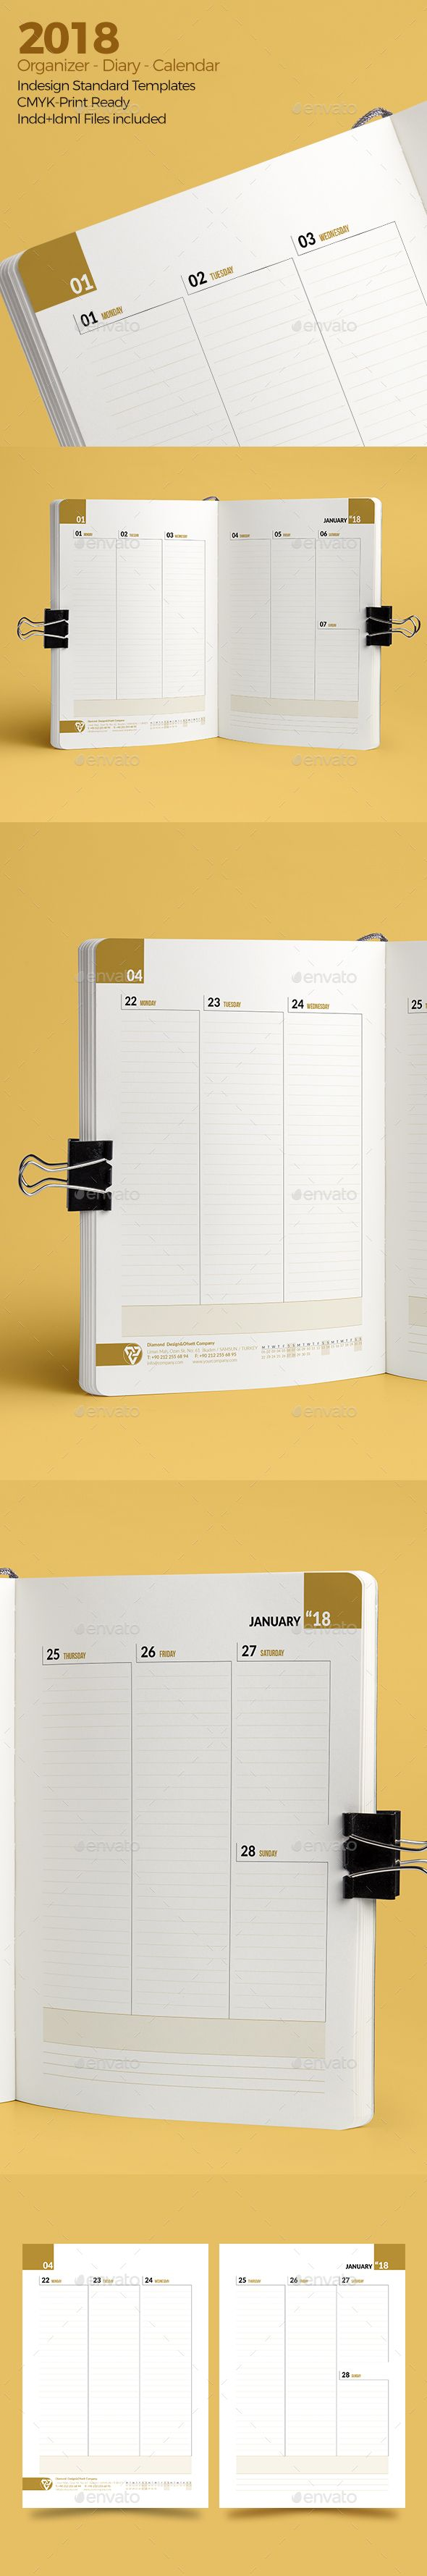 #Weekly Diary Planner 2018 v3 - #Calendars #Stationery